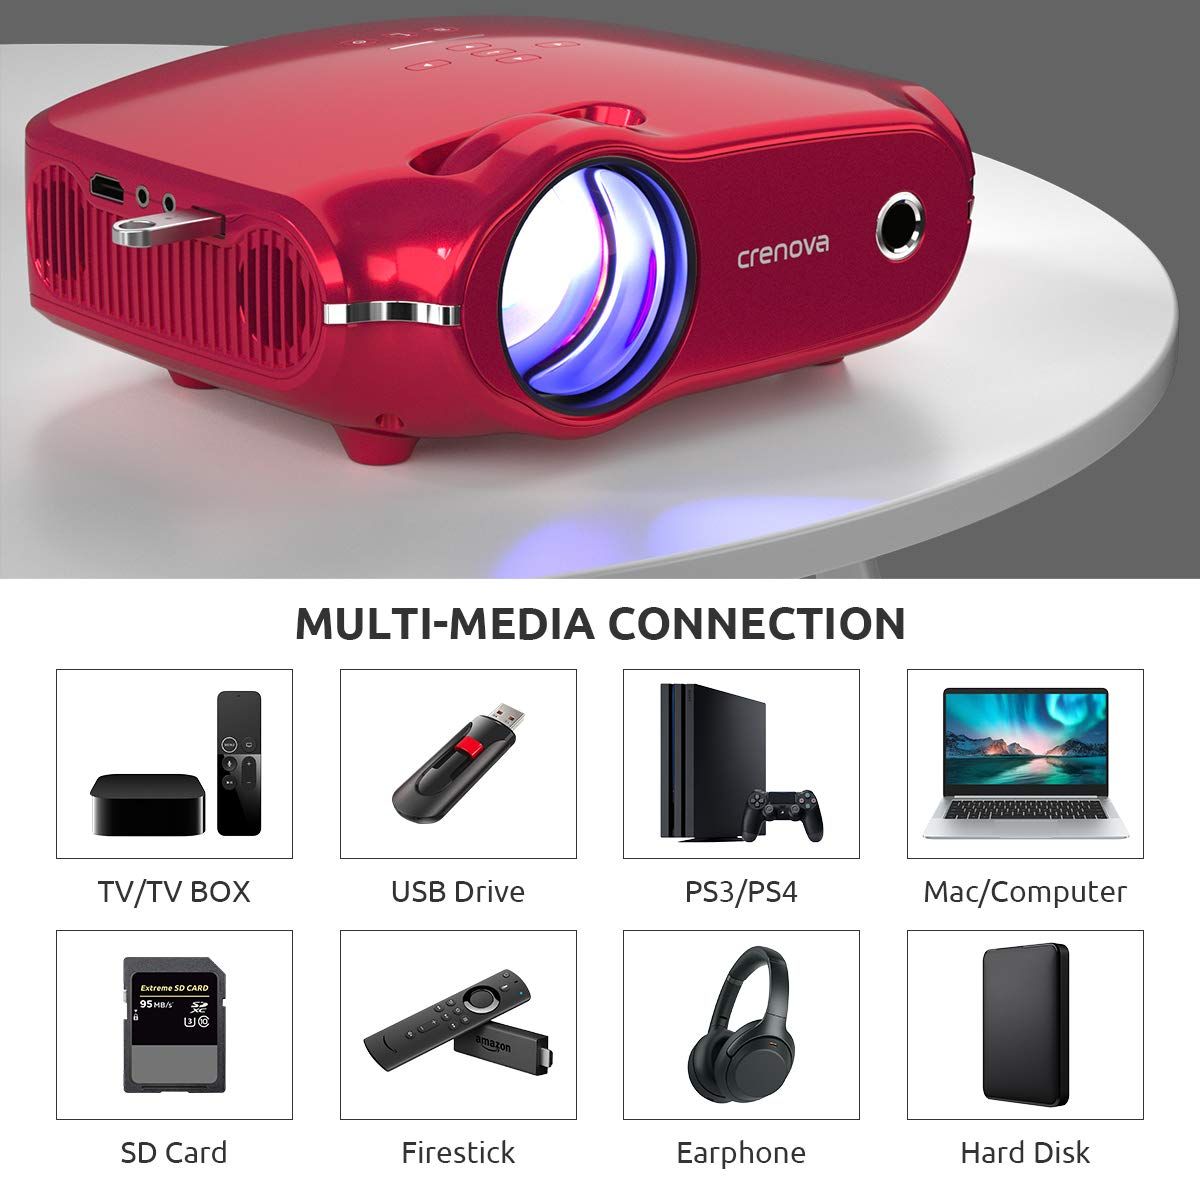 Projector, Crenova Upgraded Home Video Projector, Portable Mini Movie Projector with 3200 Lux, 200'' Display, Work with PC, Fire Stick, HDMI, PS4, TV Box, VGA, TF, AV, USB for Home Theater/Outdoor/Game by crenova (Image #8)